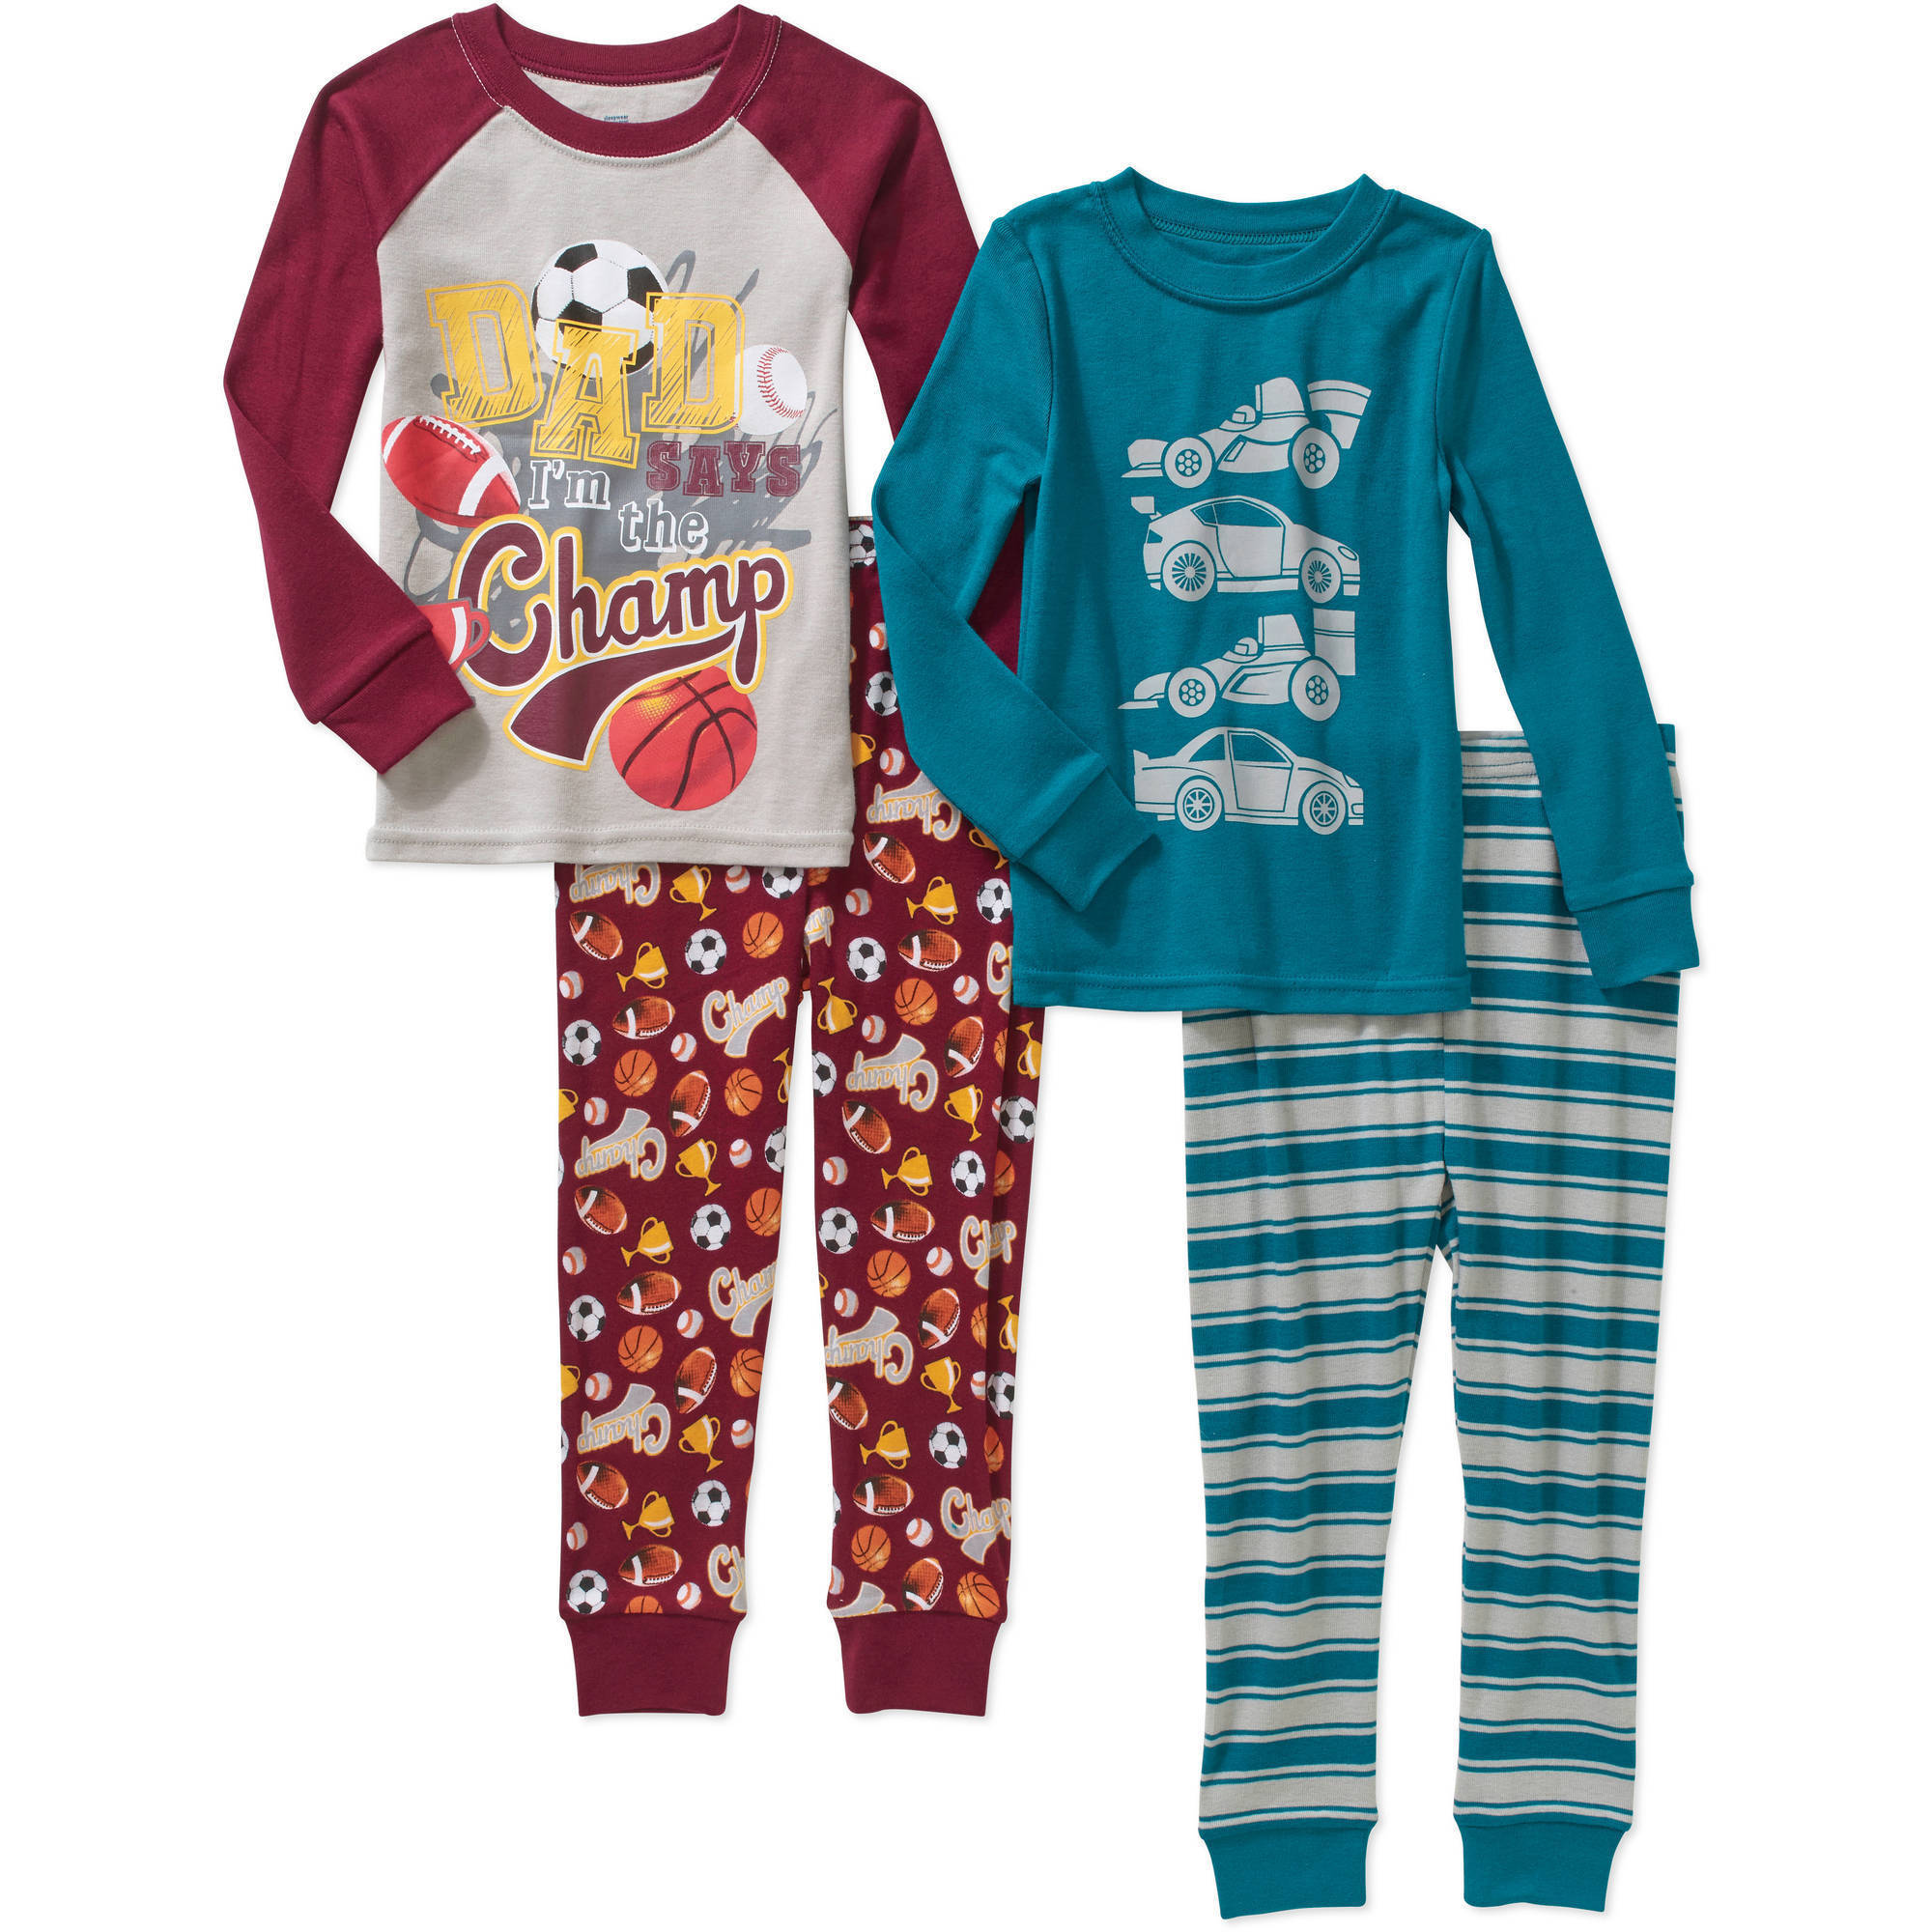 Baby Toddler Boys' Cotton Tight Fit Pajamas, 4-Piece Set